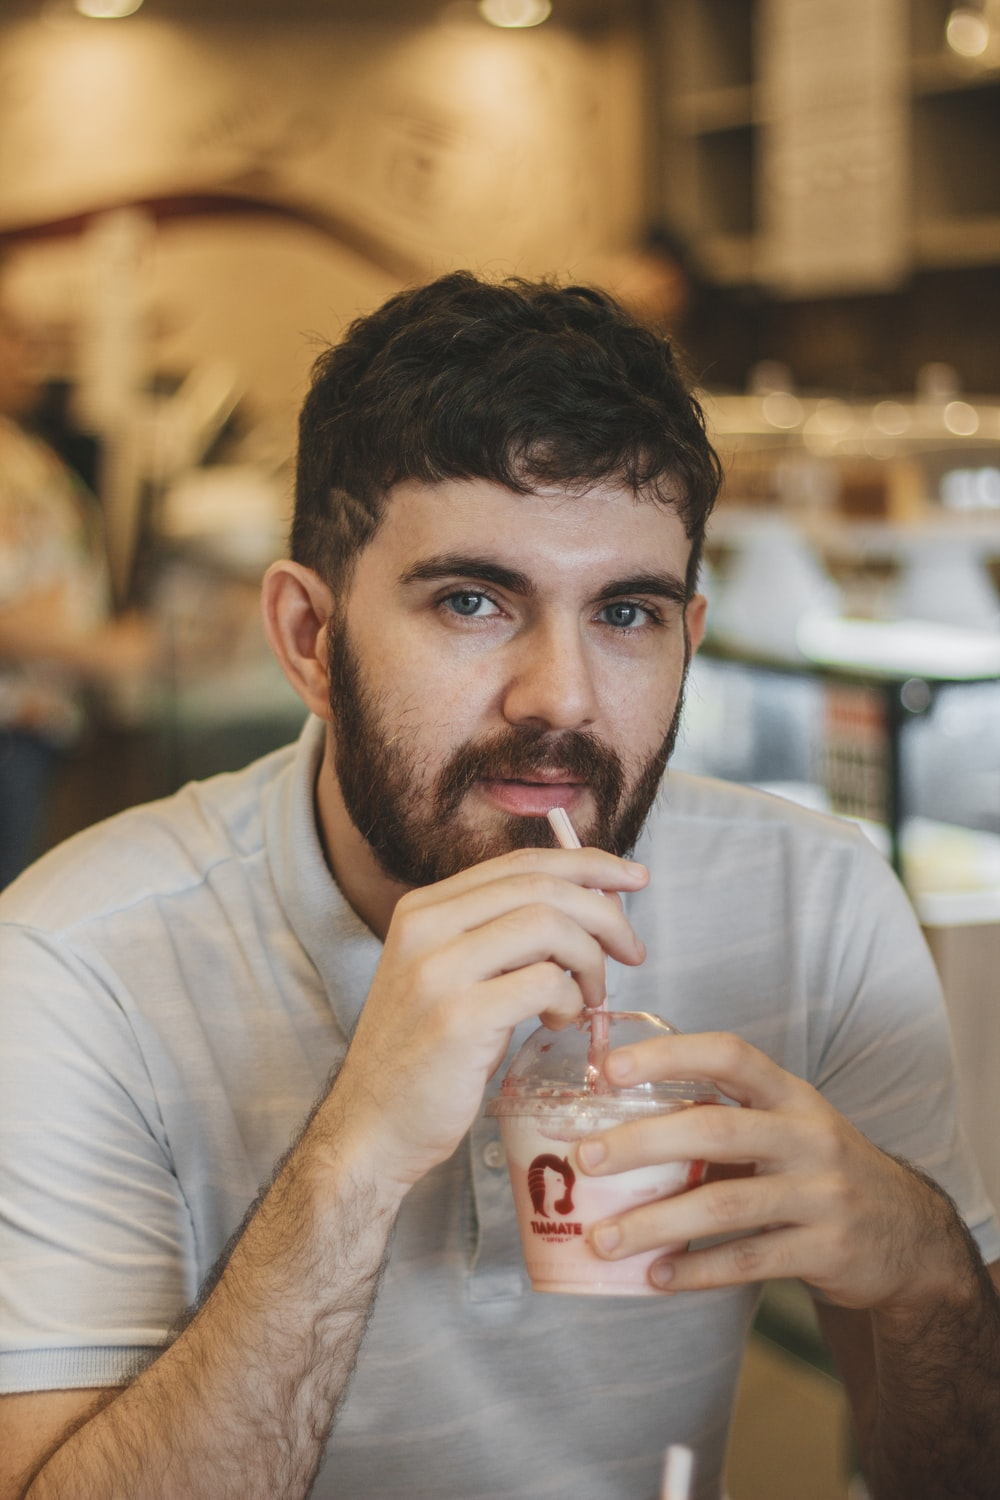 selective focus photography of man drinking smoothie